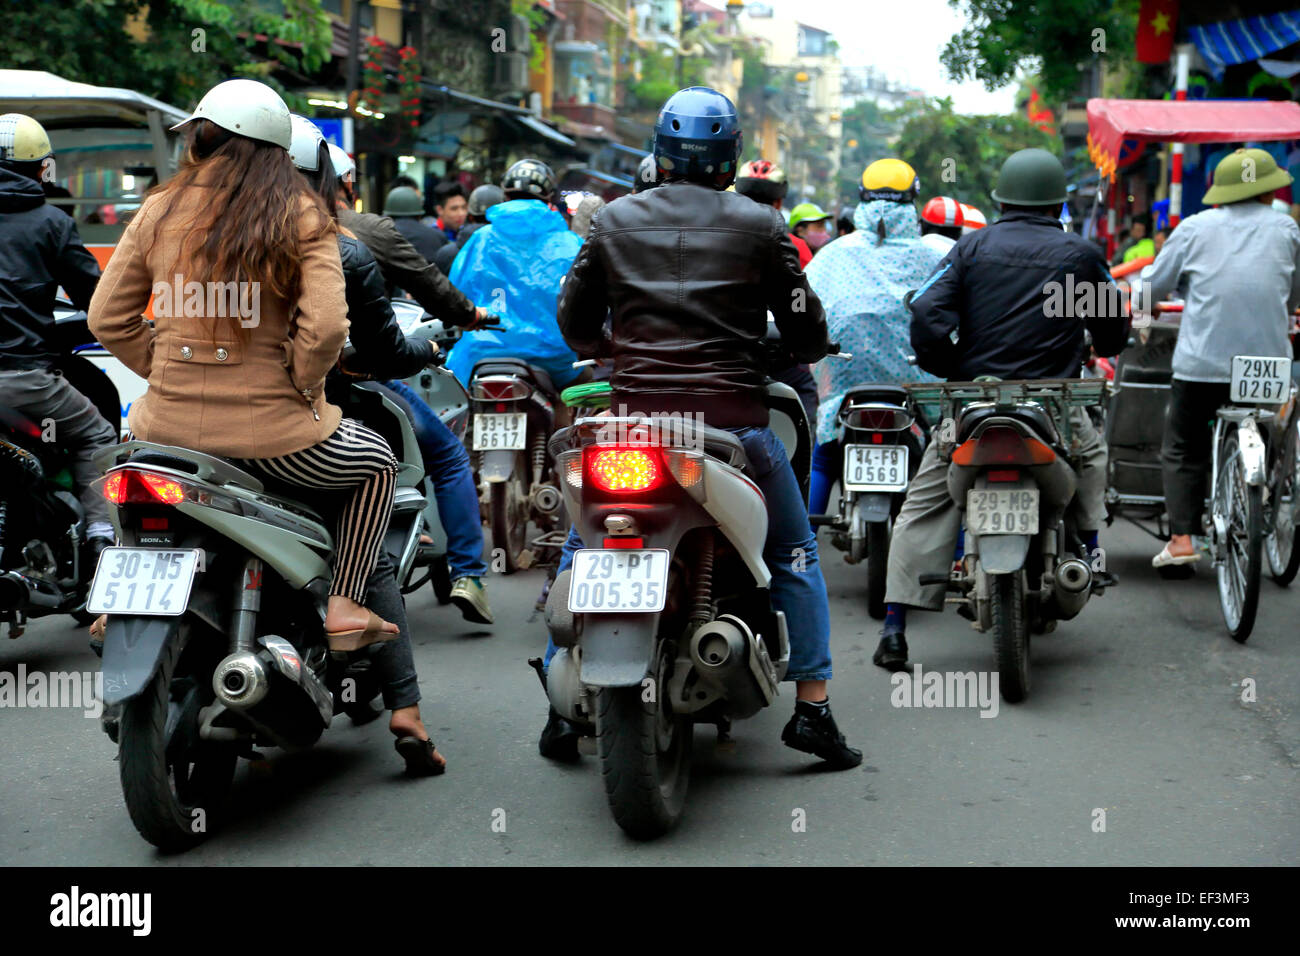 Scooters as seen from bicycle rickshaw ride, Old Quarter (aka The 36 Streets), Hanoi, Vietnam - Stock Image